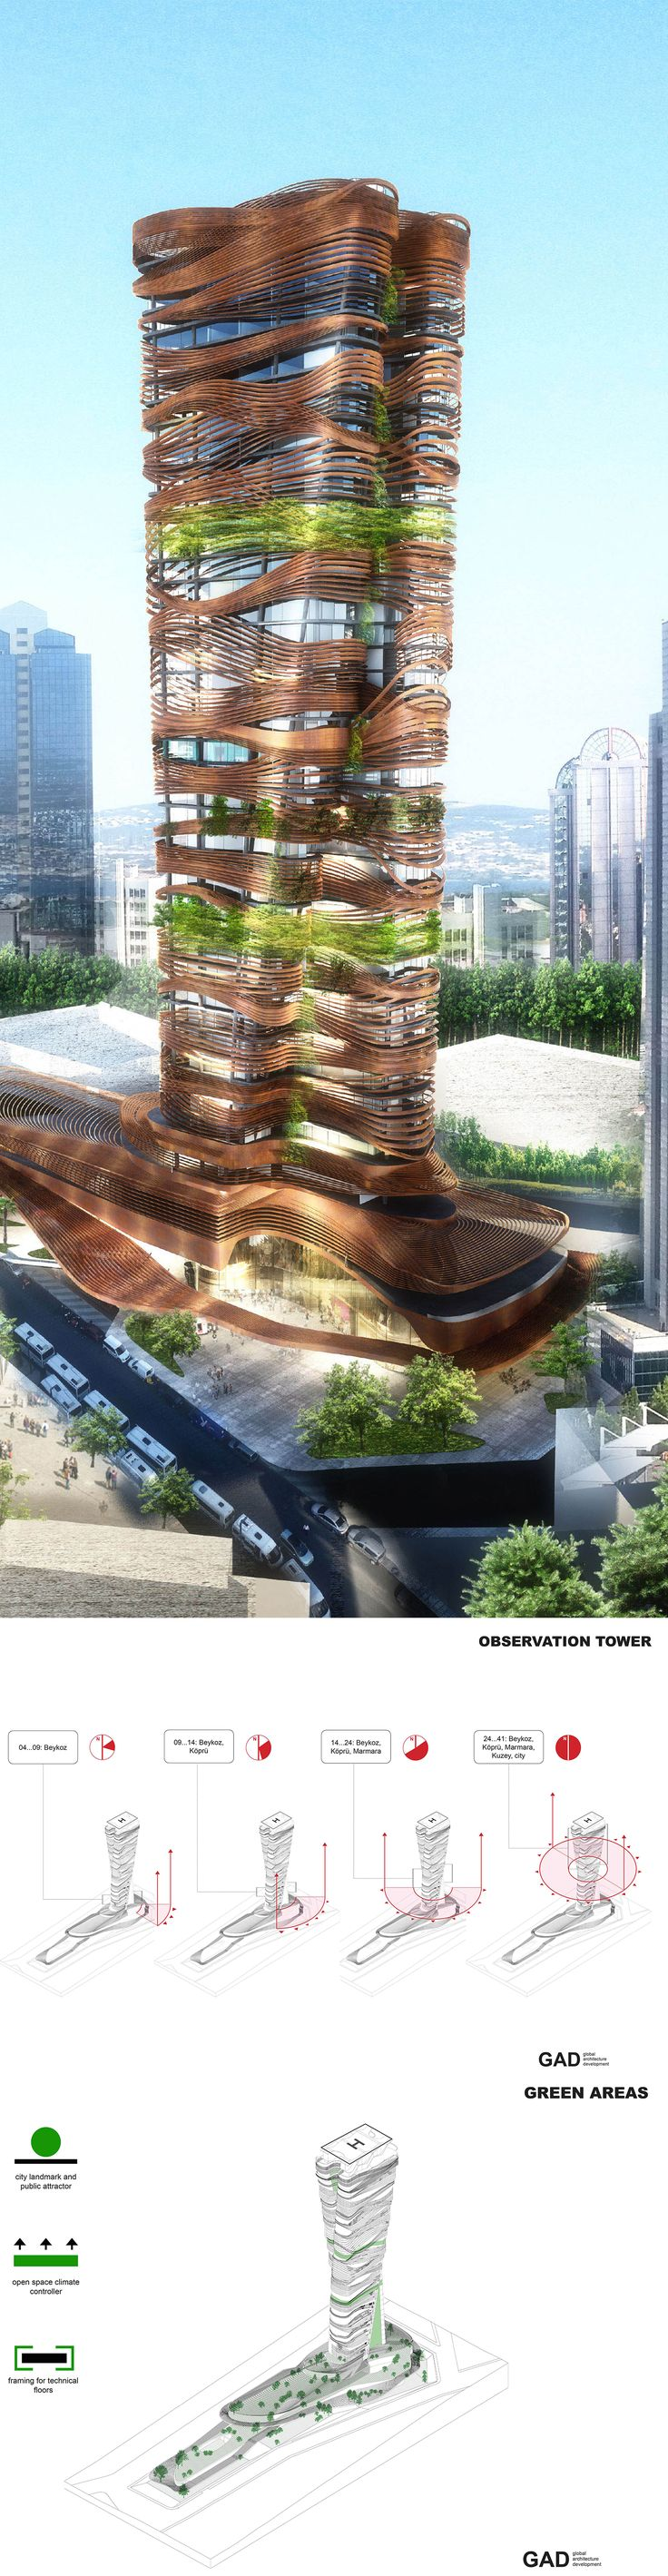 The ground and first floor comprise of the retail segment which forms the base of the design spanning the entire site and tiers upwards forming terraces for social-retail use and creates pathways that effectively carve the geometric form of the entire building. #gad #gokhan #avcioglu #architecture #architectural #plans #skyscraper #highrise #istanbul #mimar #mimarlik #urban #green #landscape #design #greenroof #masterplan #maslak #twisted #structure #render #architecturalrender #regeneration